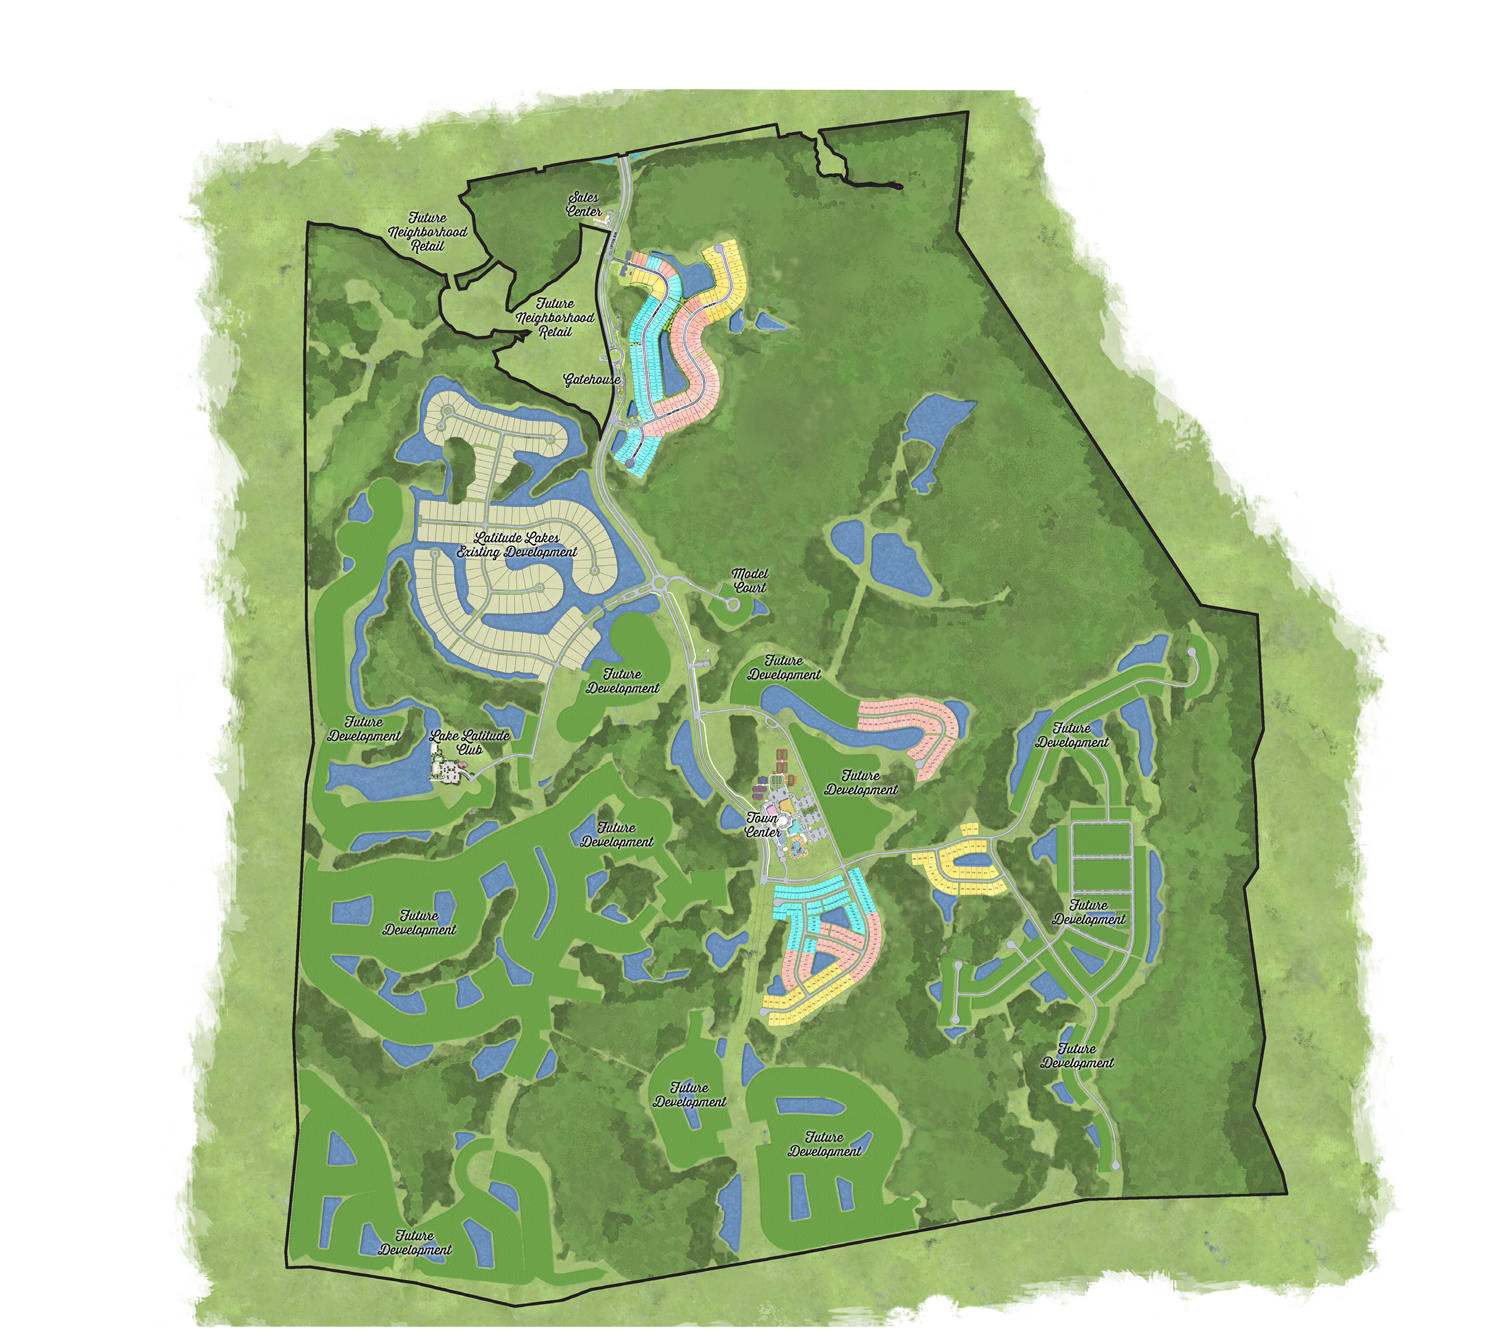 Latitude Margaritaville Hilton Head Plan with areas of community current homesite release and interest